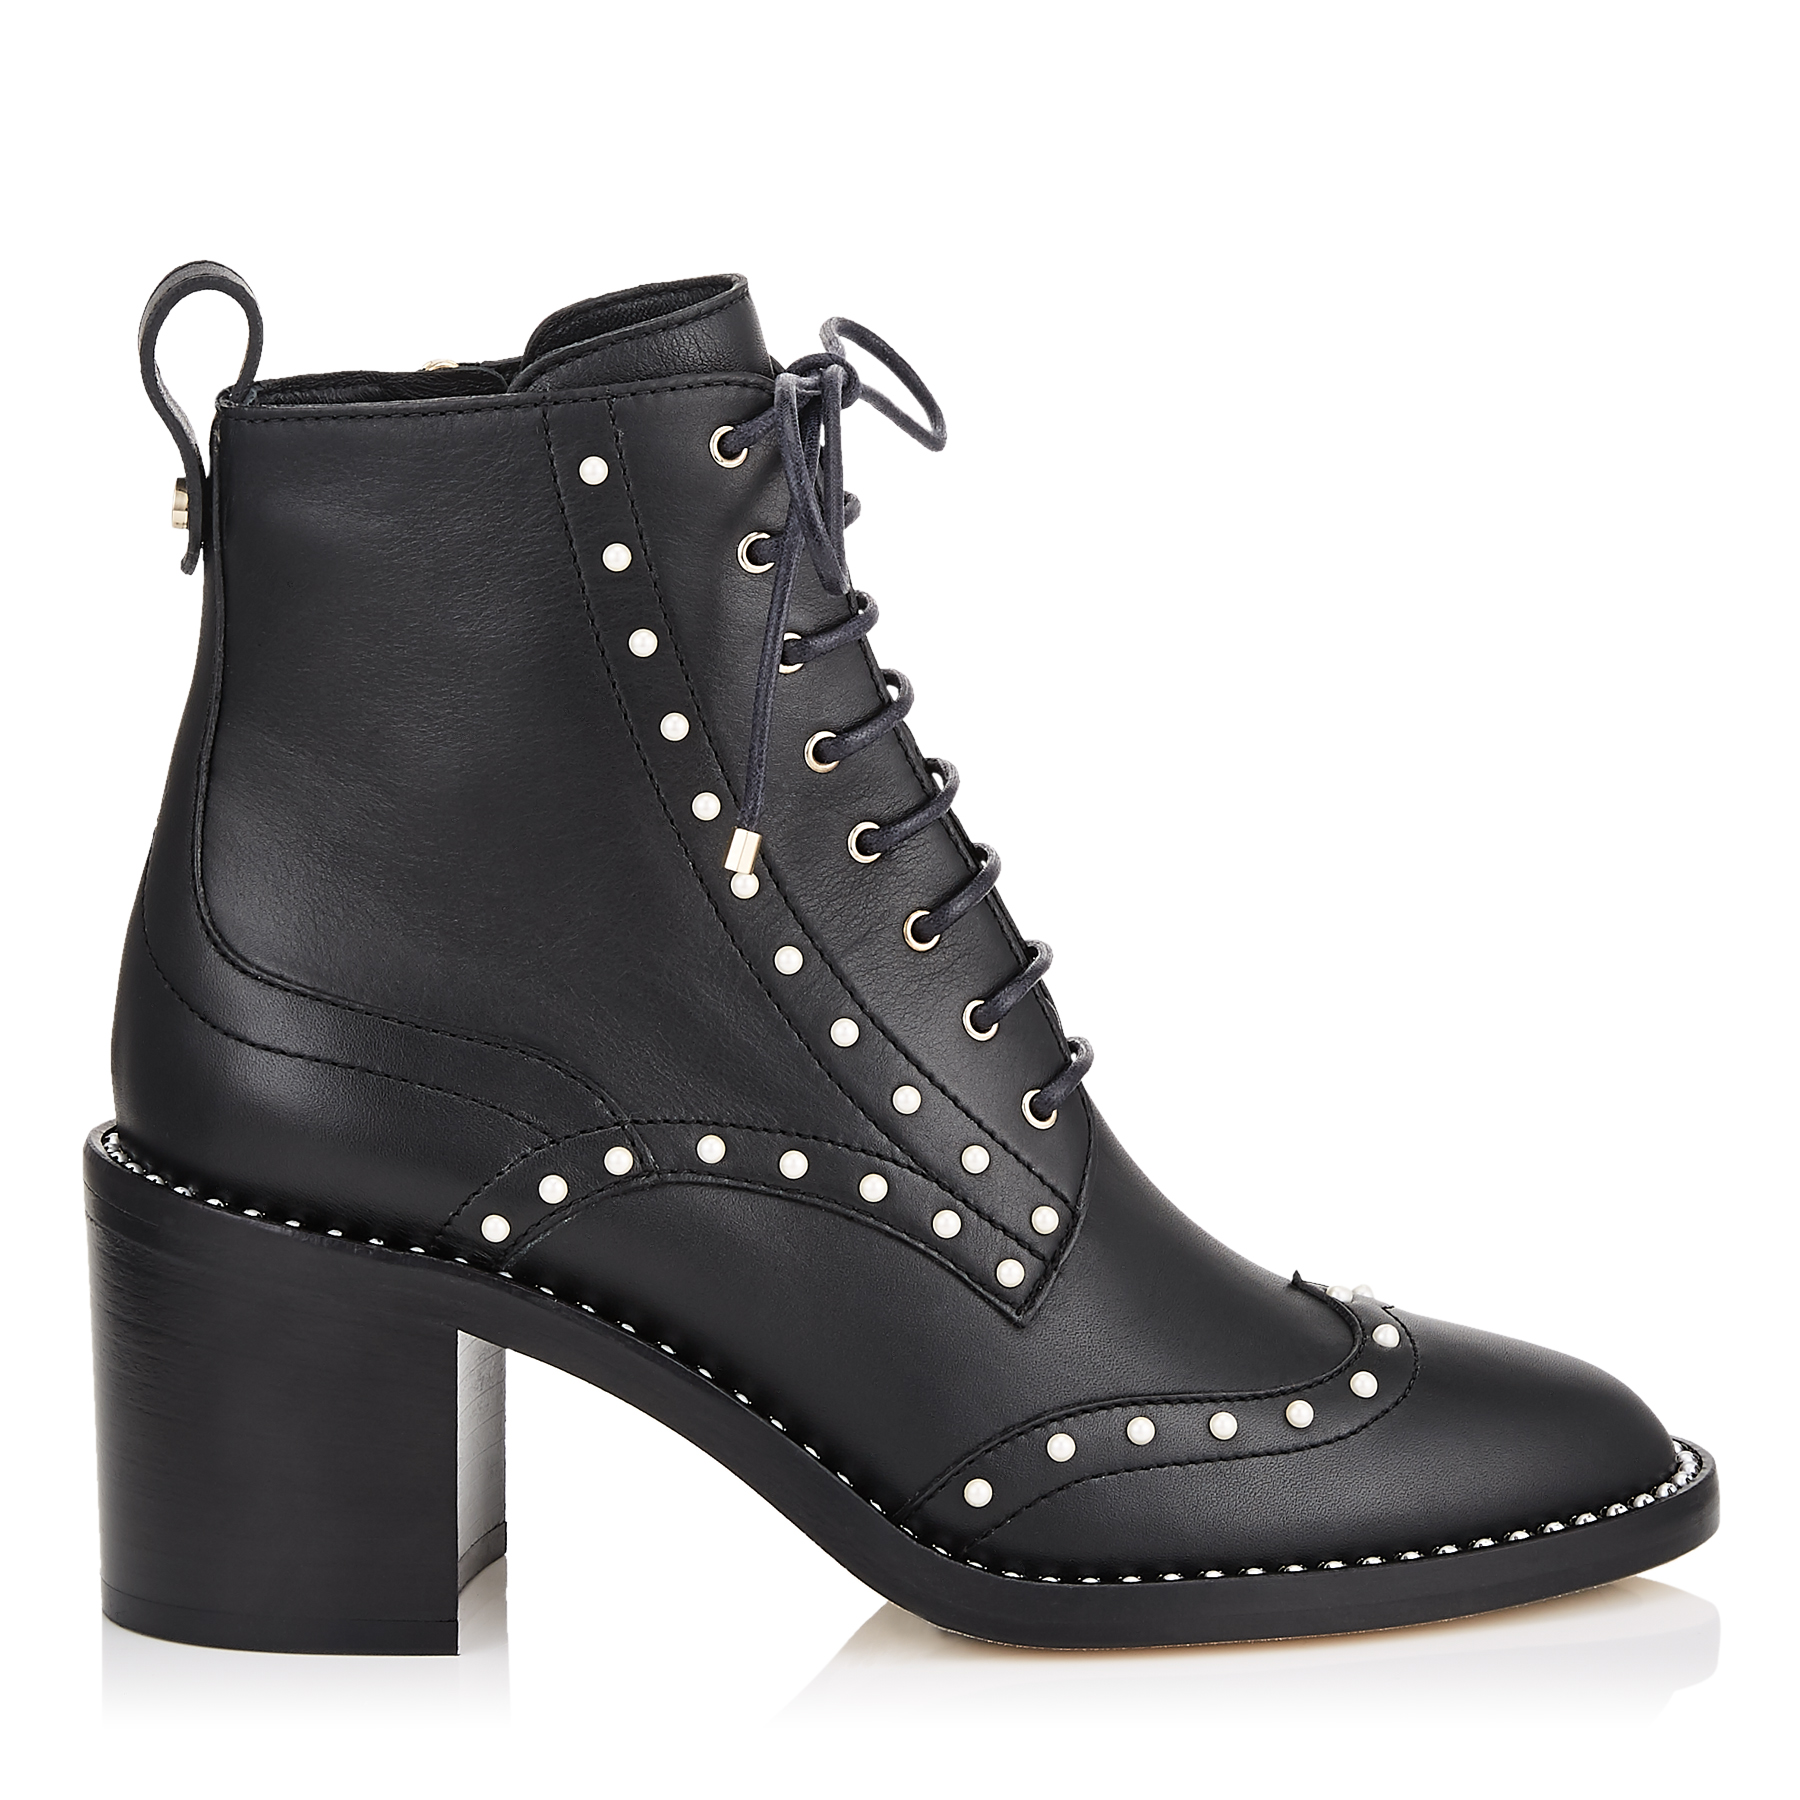 HANAH 65 Black Smooth Leather Booties with Pearl Detailing by Jimmy Choo